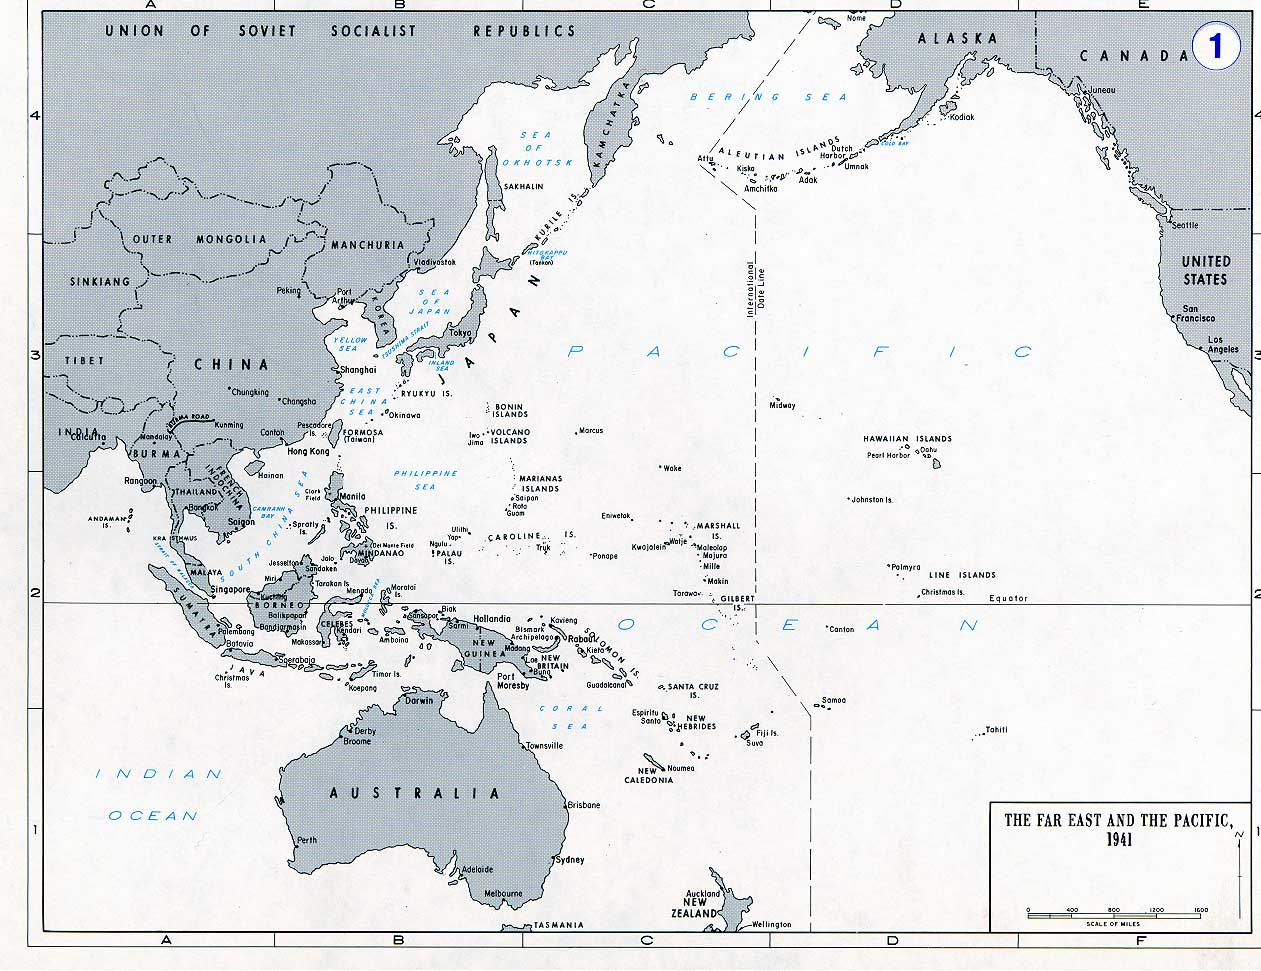 Maps for The World War II Service of William L Hurley